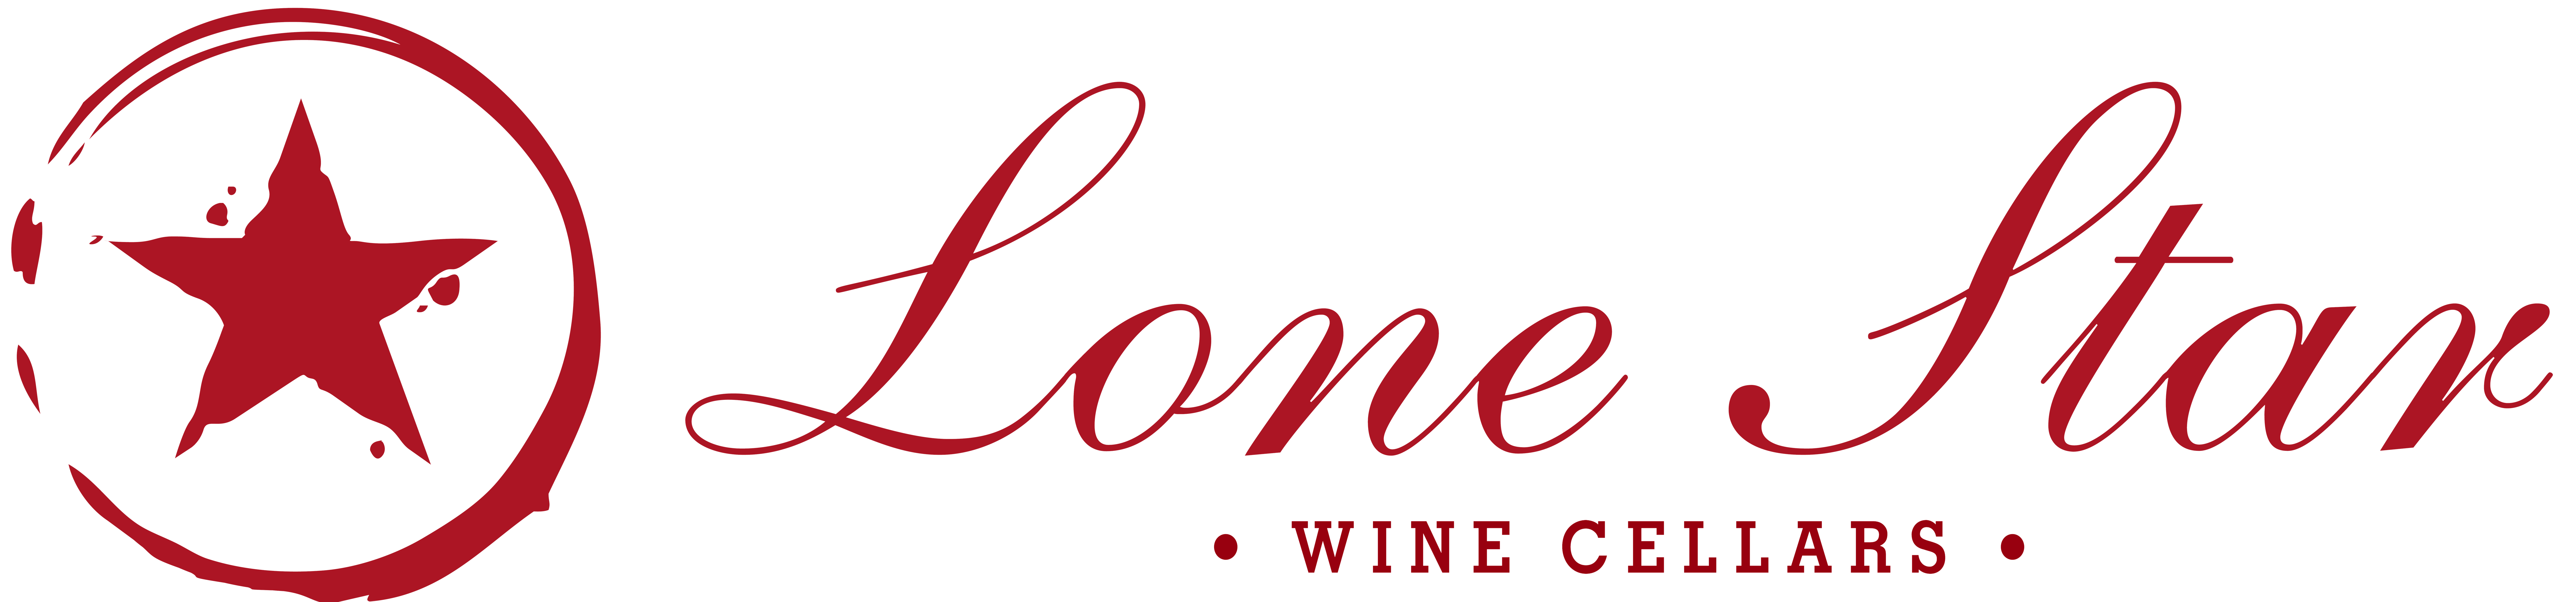 Cheers to great Texas wine in great company!